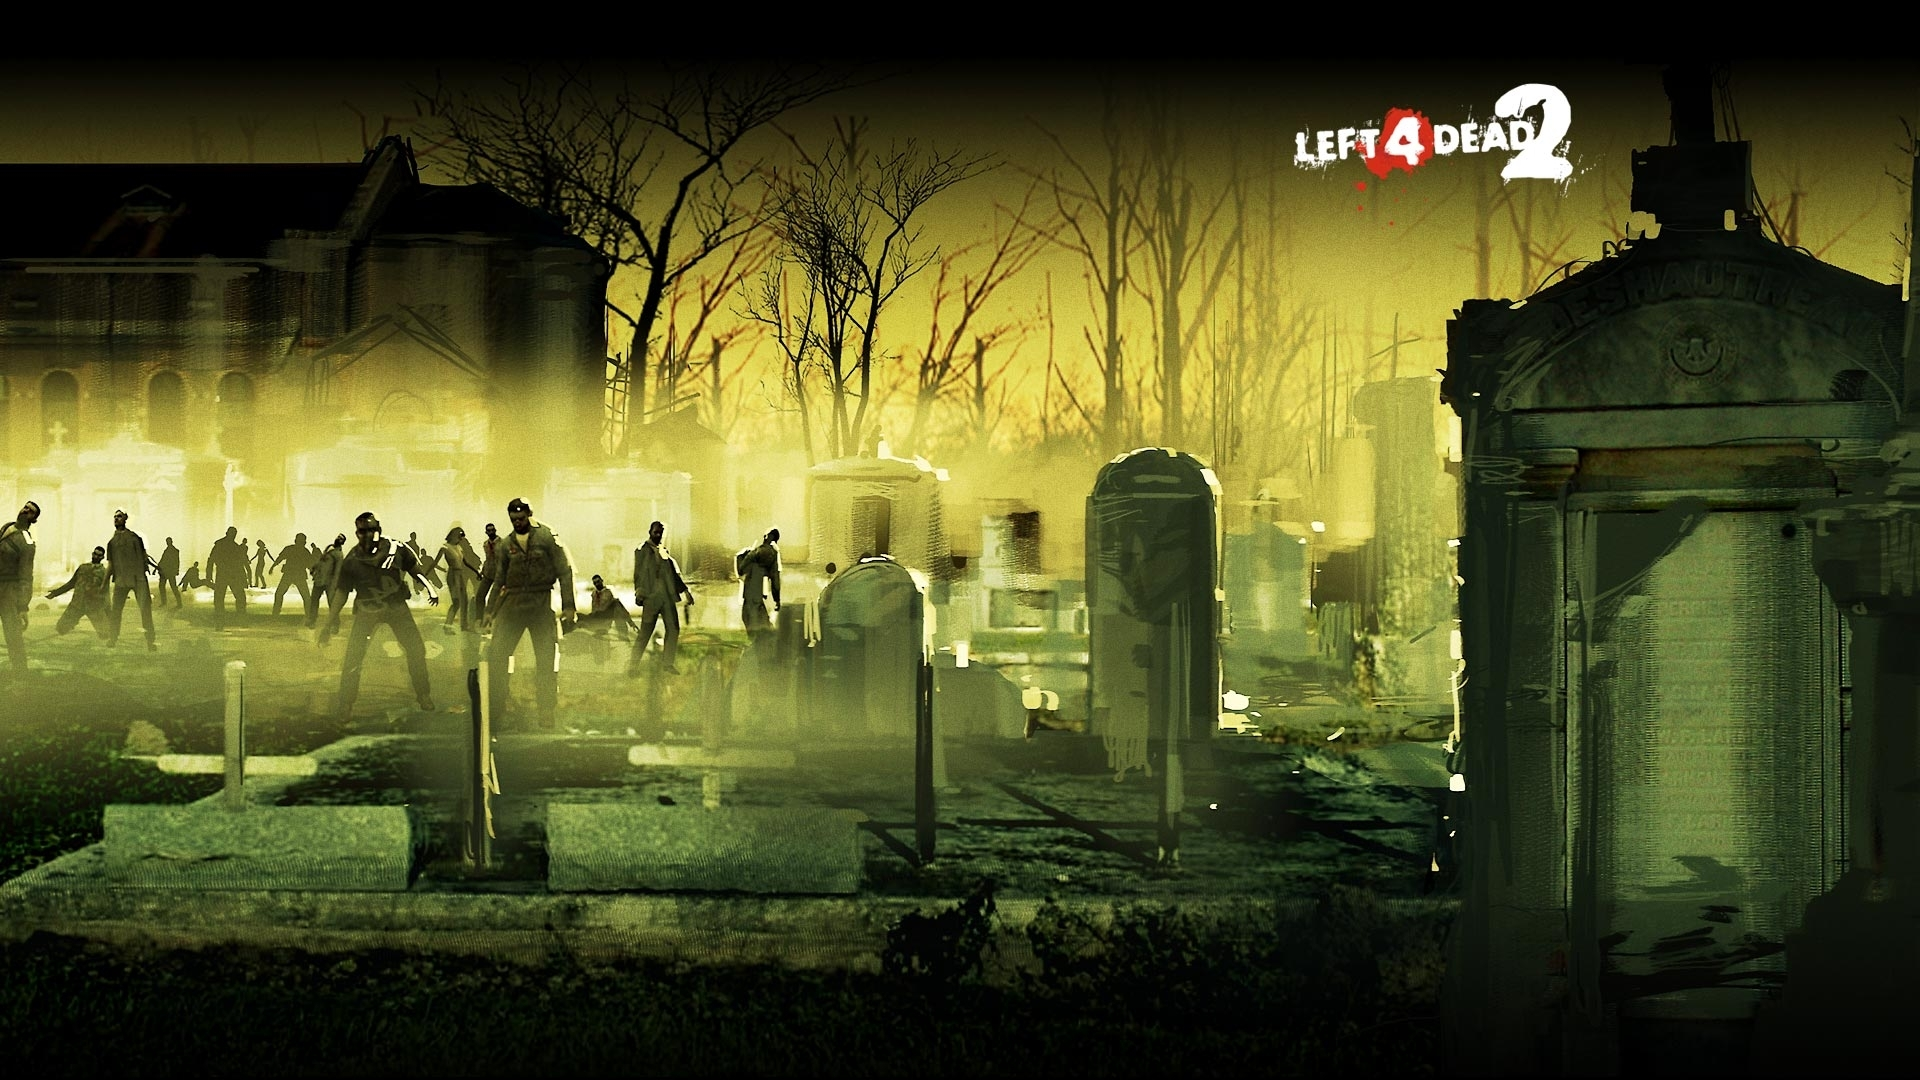 wallpaper #1 wallpaper from left 4 dead 2 - gamepressure